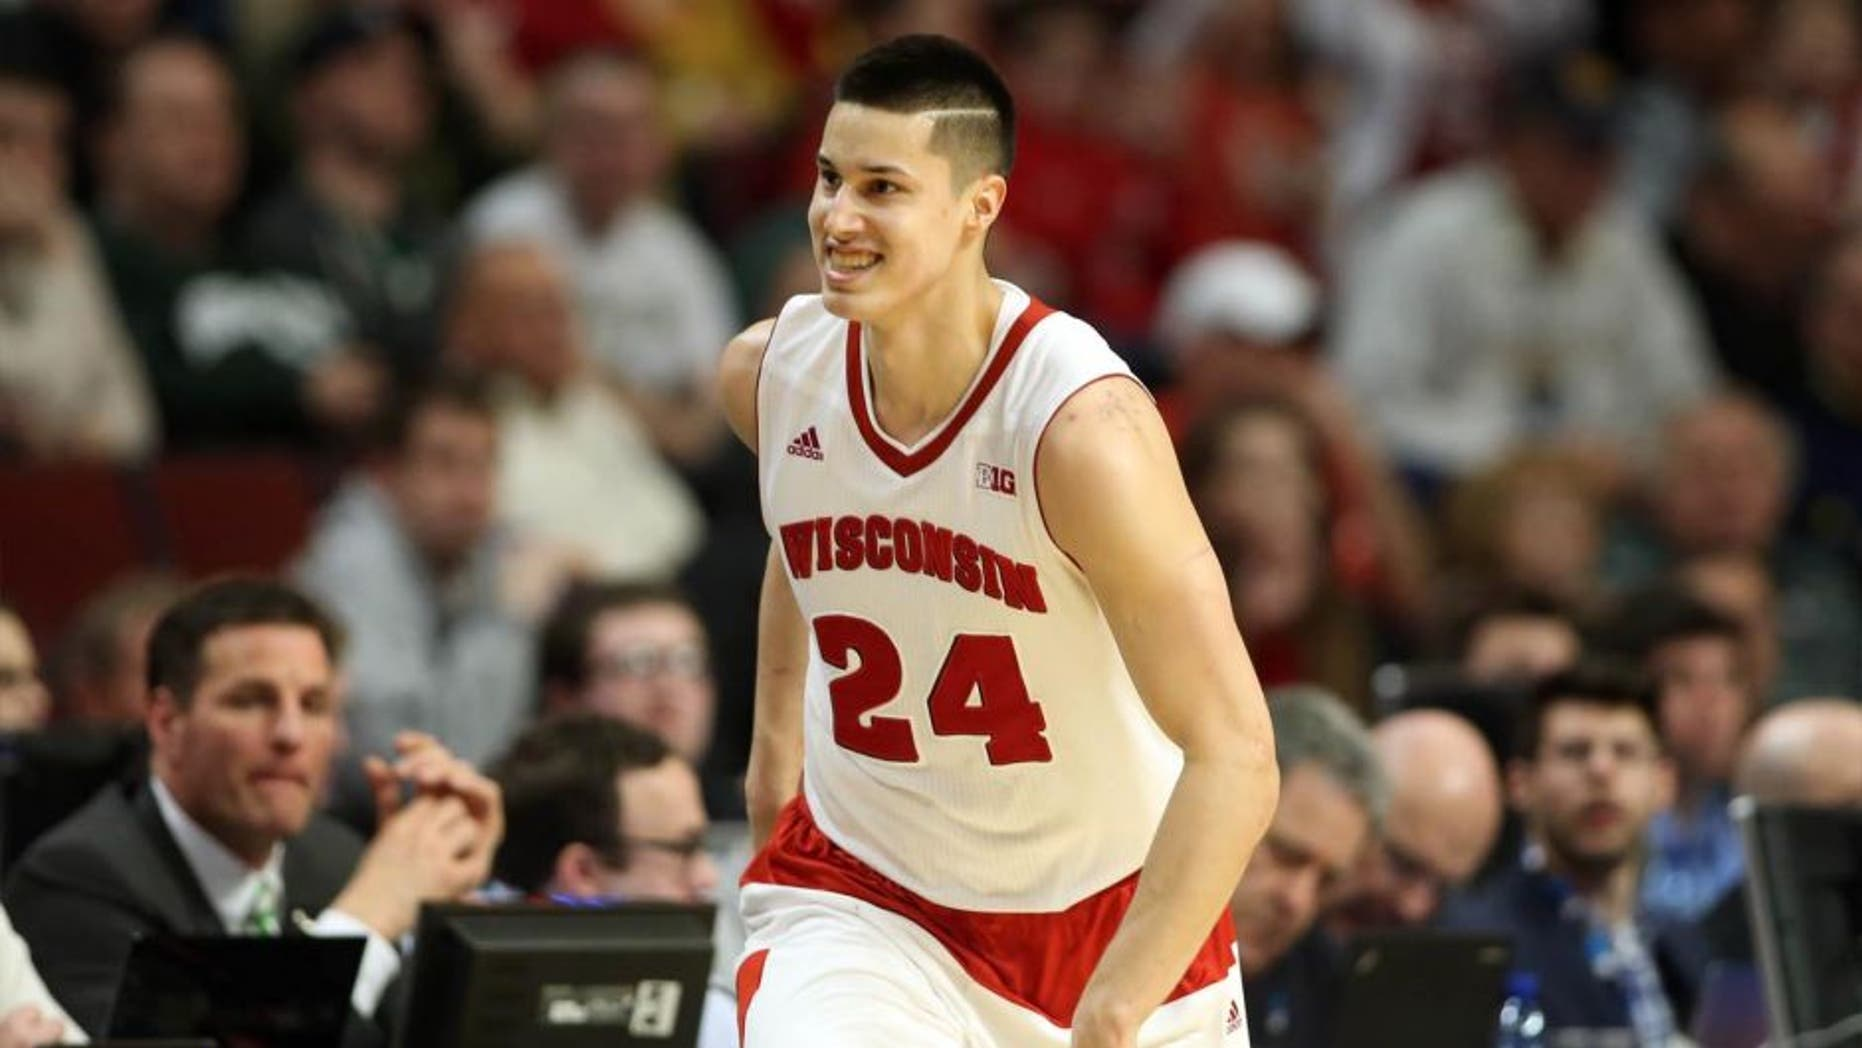 Wisconsin Badgers guard Bronson Koenig reacts after making a three-pointer against the Purdue Boilermakers during the second half in the semifinals of the Big Ten tournament in Chicago.